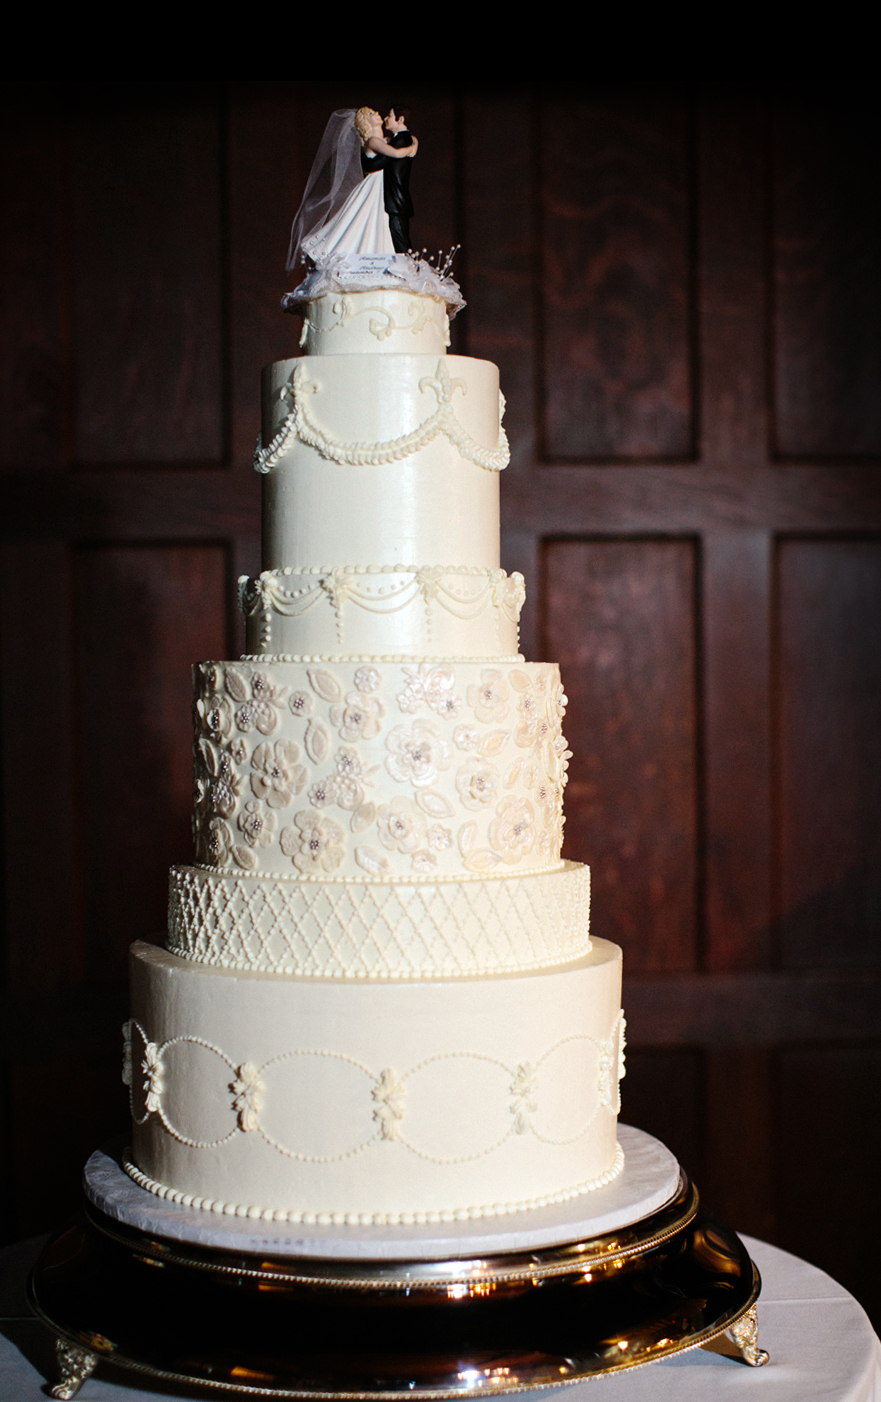 Palmer S Weddings Events Catering Flowers Cakes Decor And